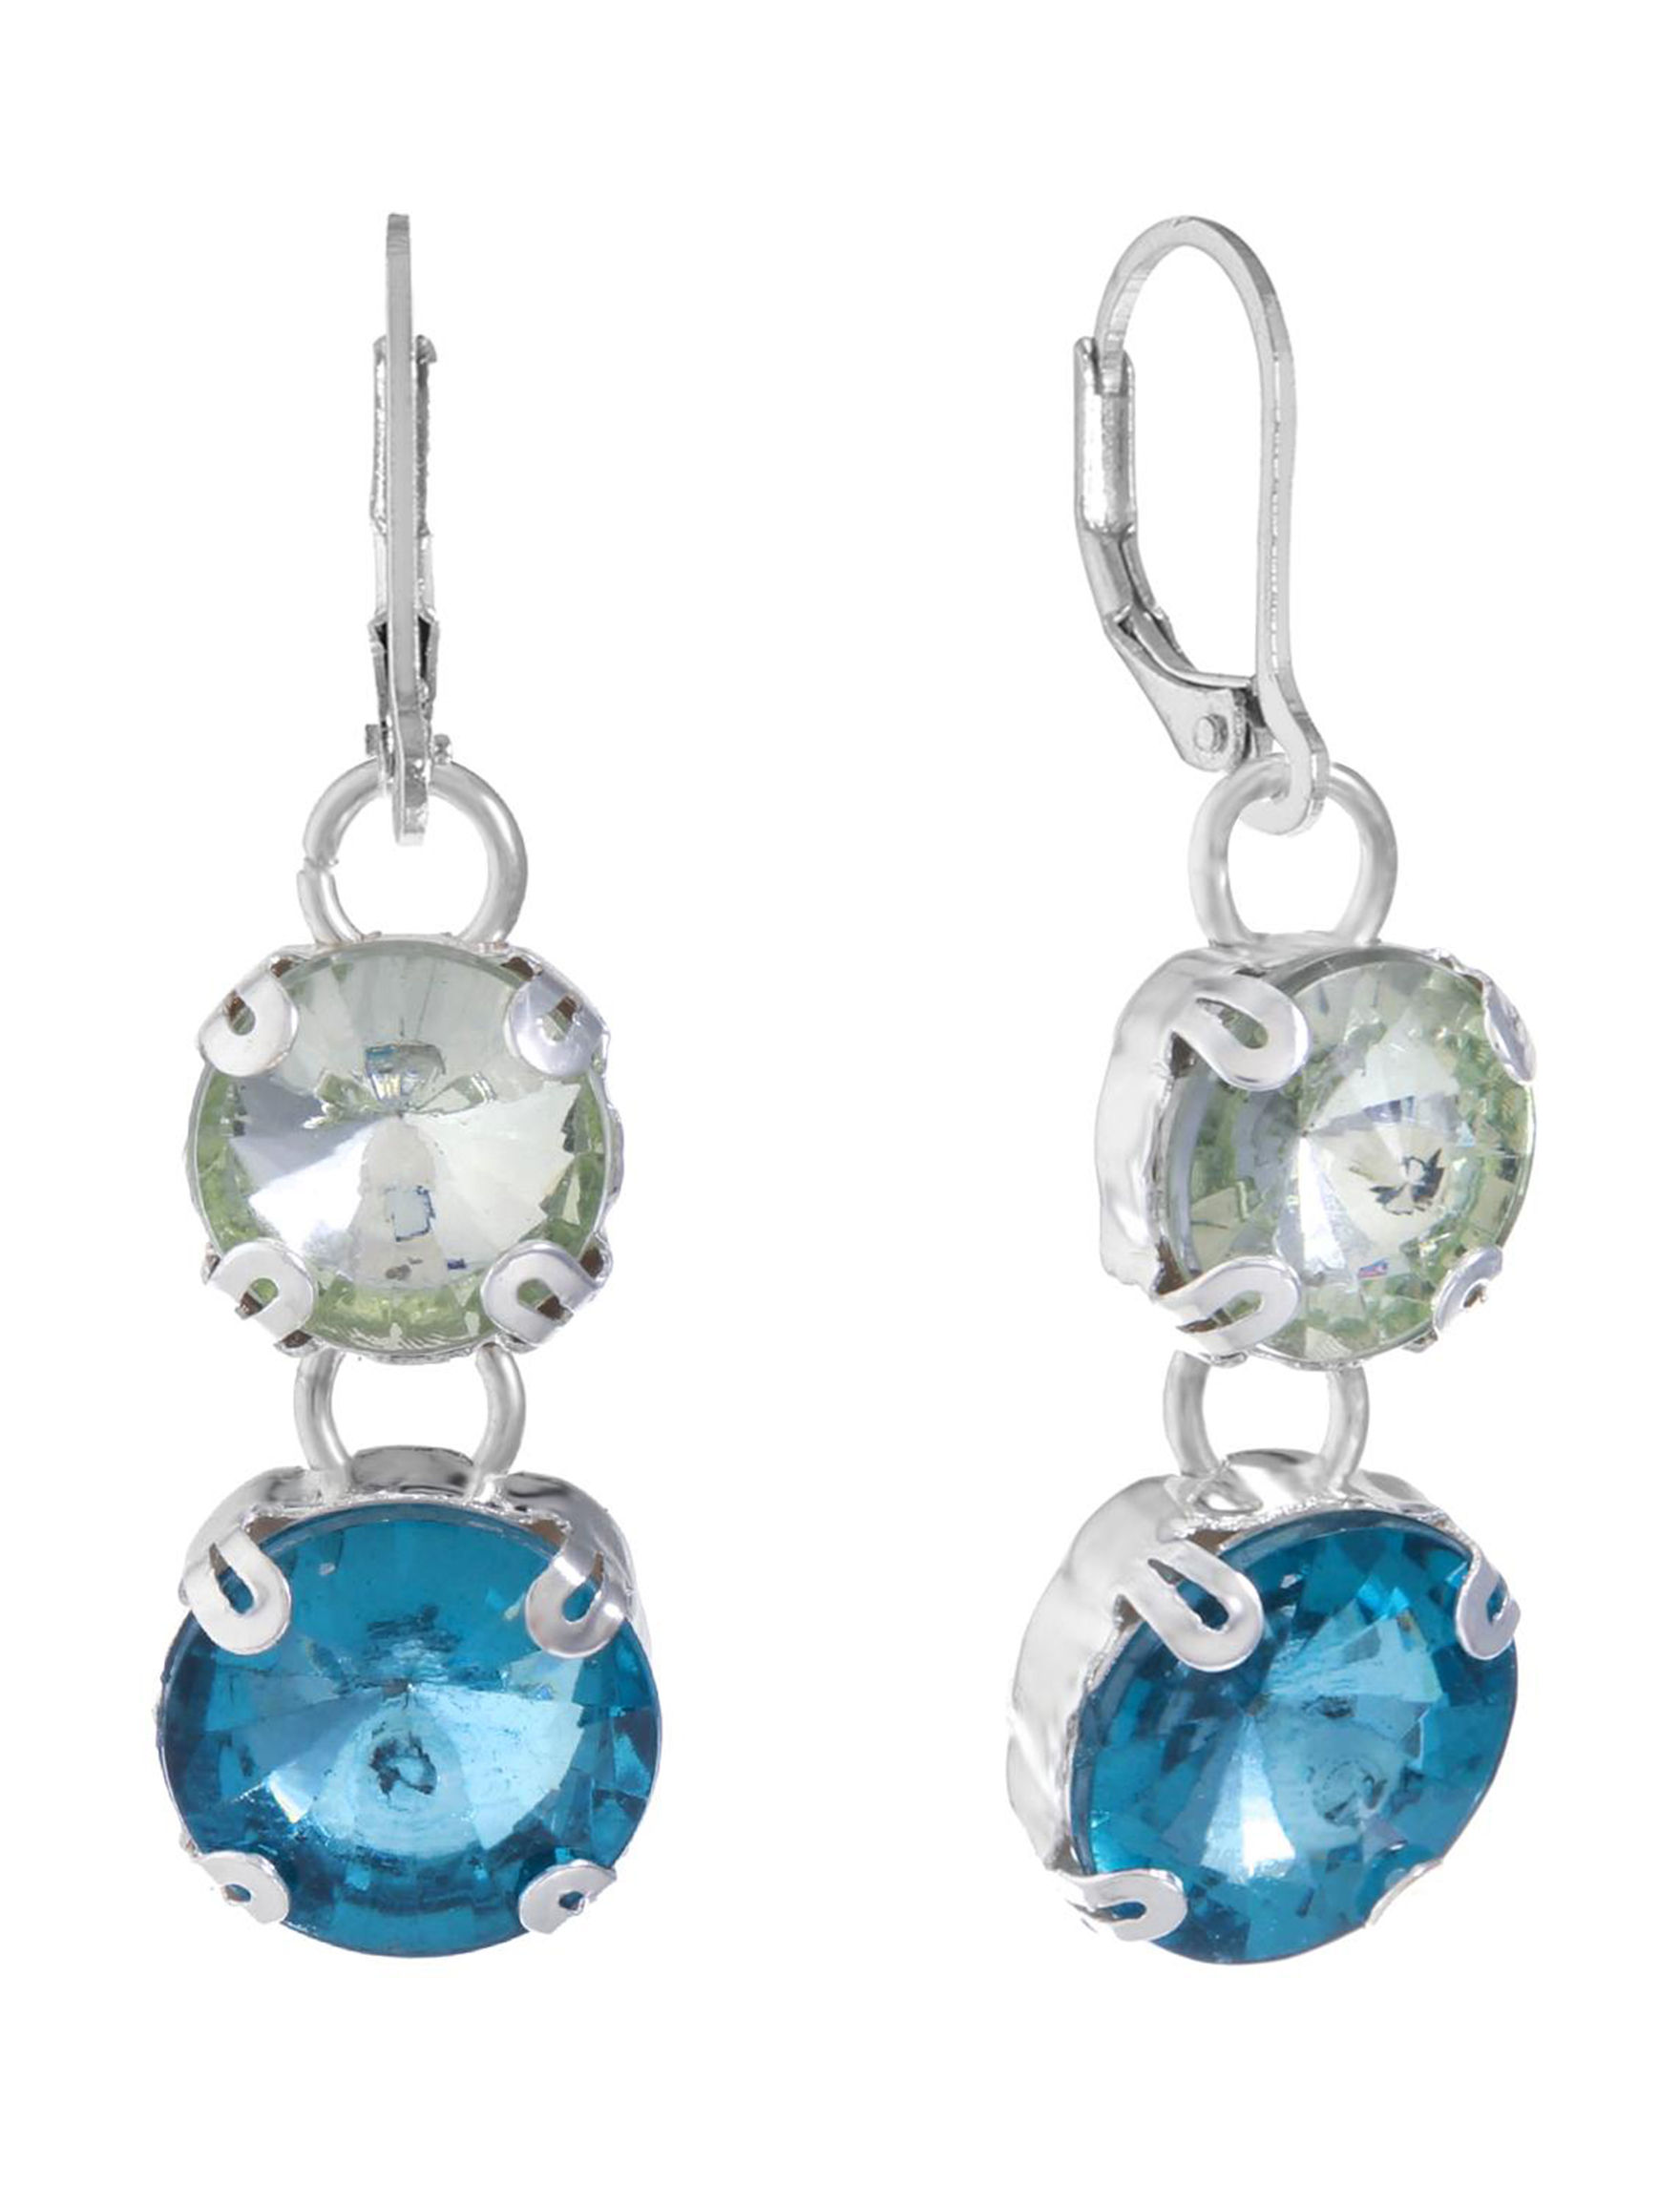 Gloria Vanderbilt Silver / Blue Stone Drops Earrings Fashion Jewelry